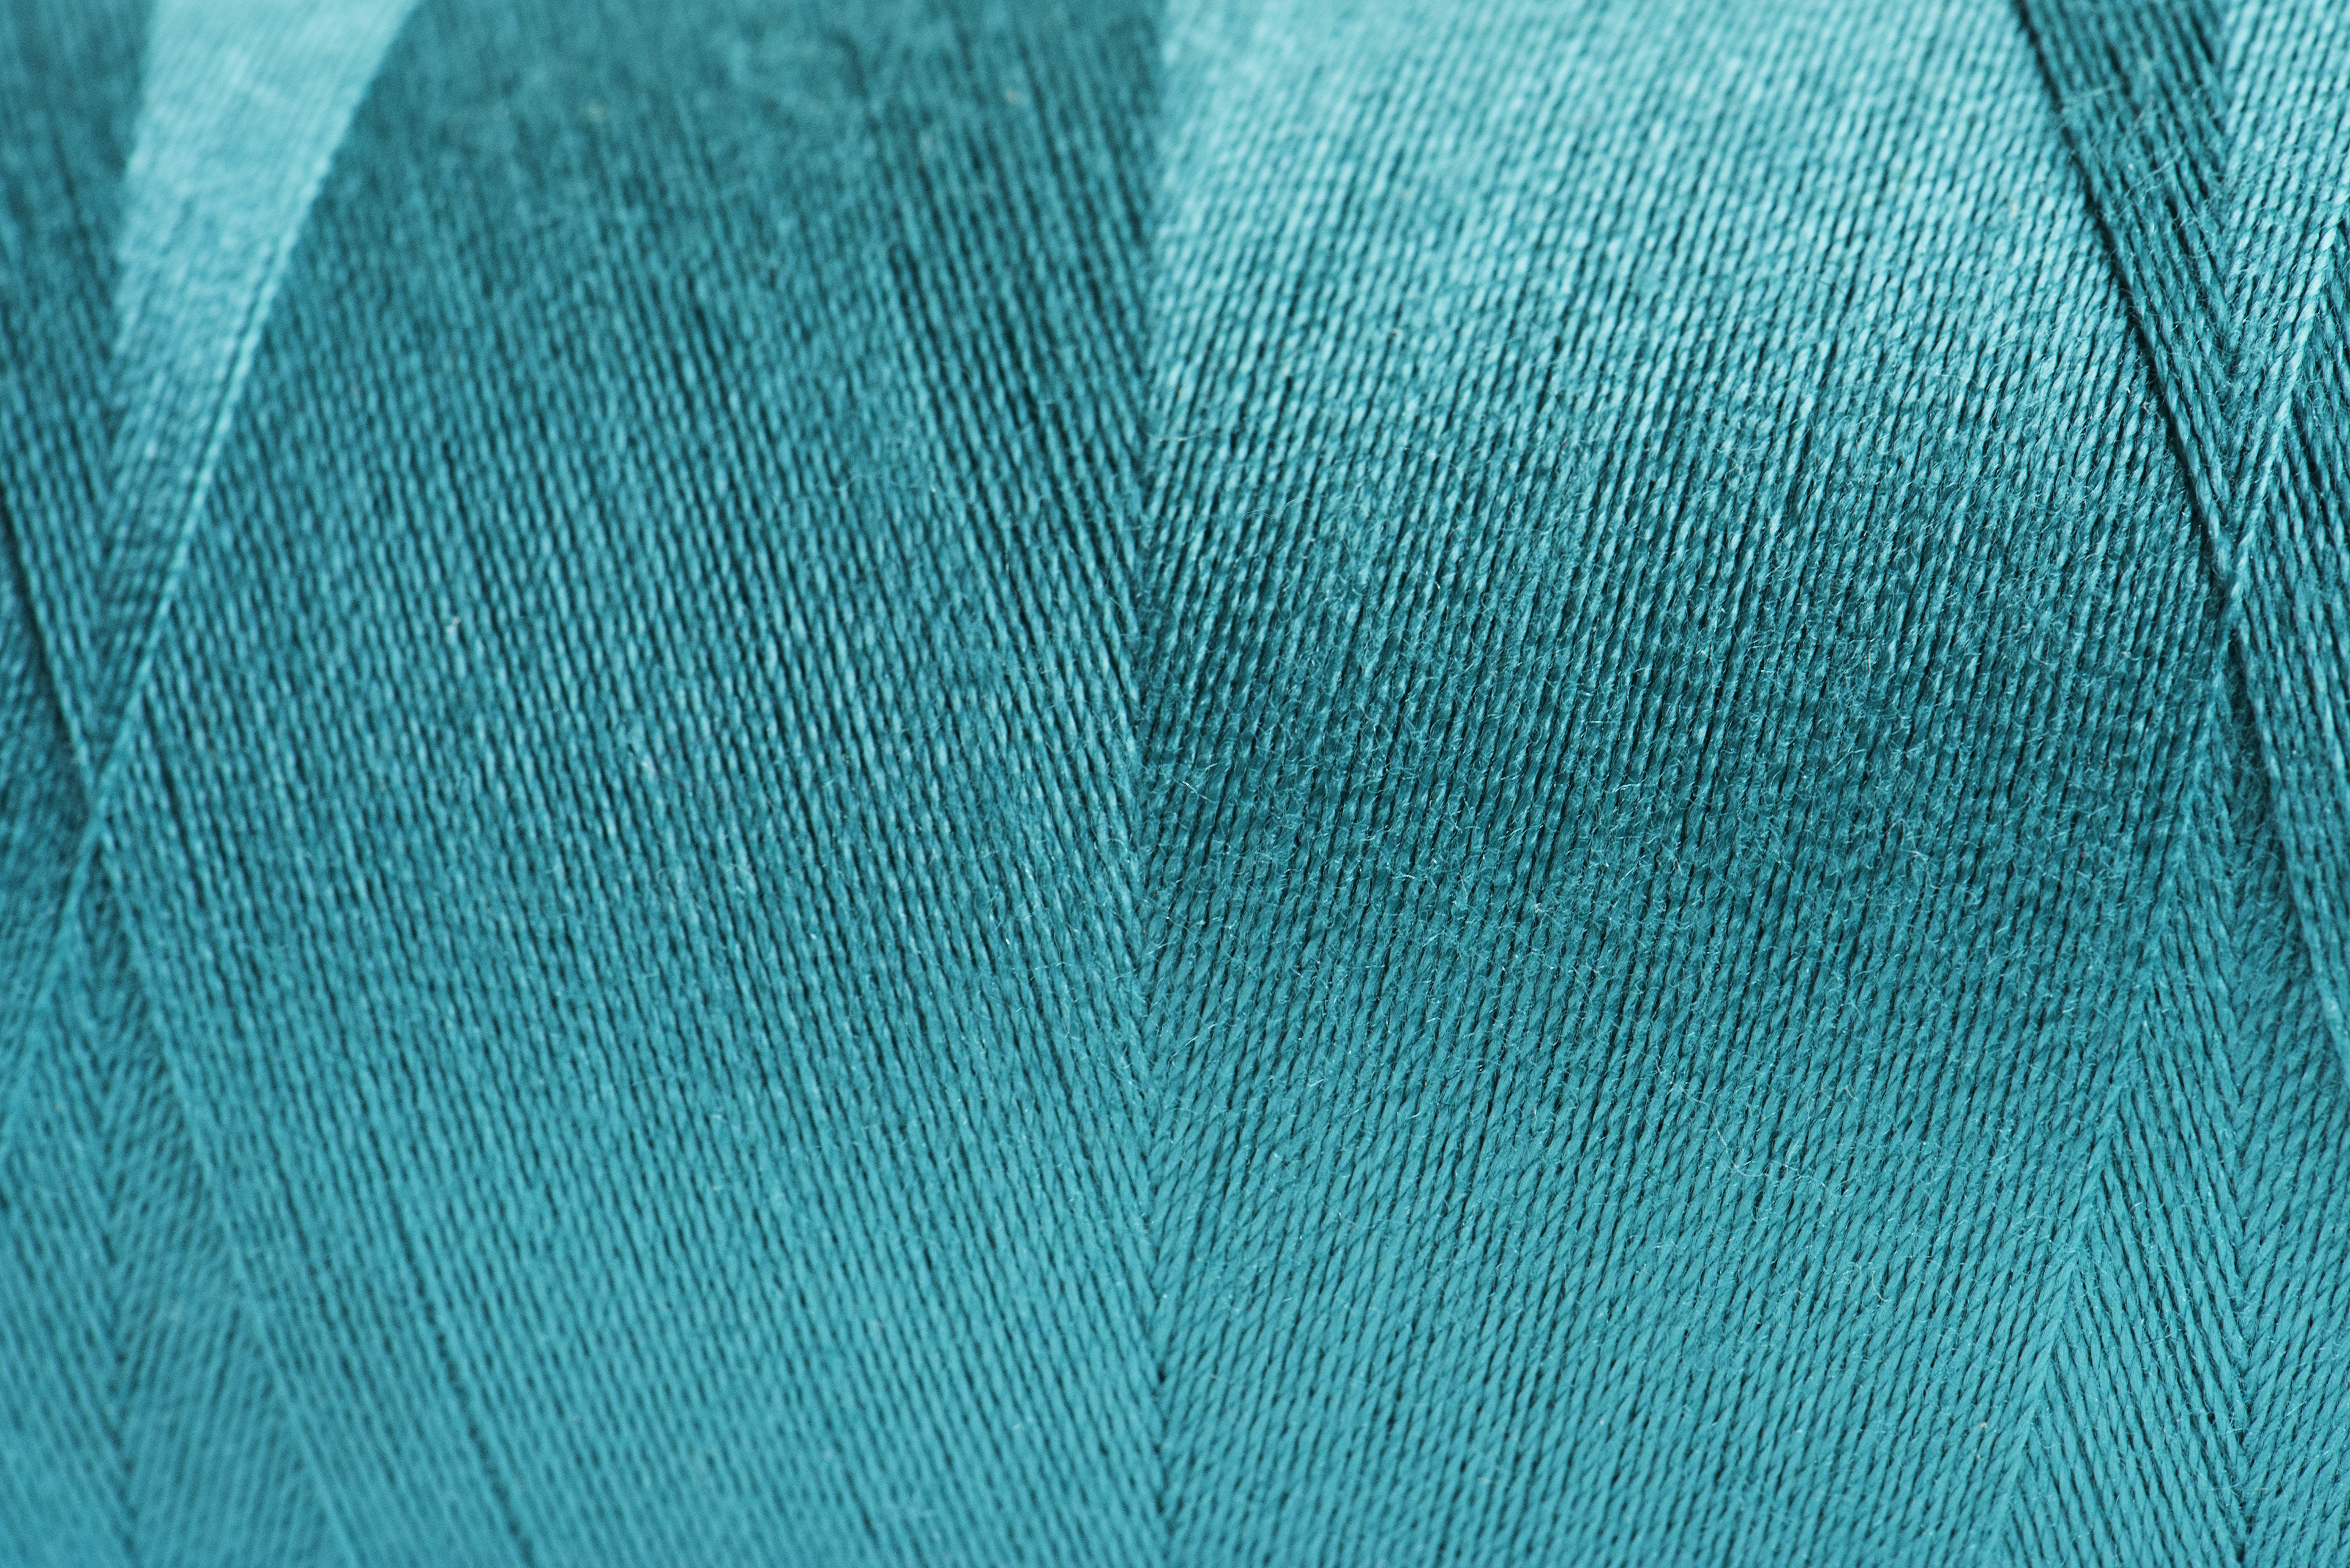 close-up photo of teal thread